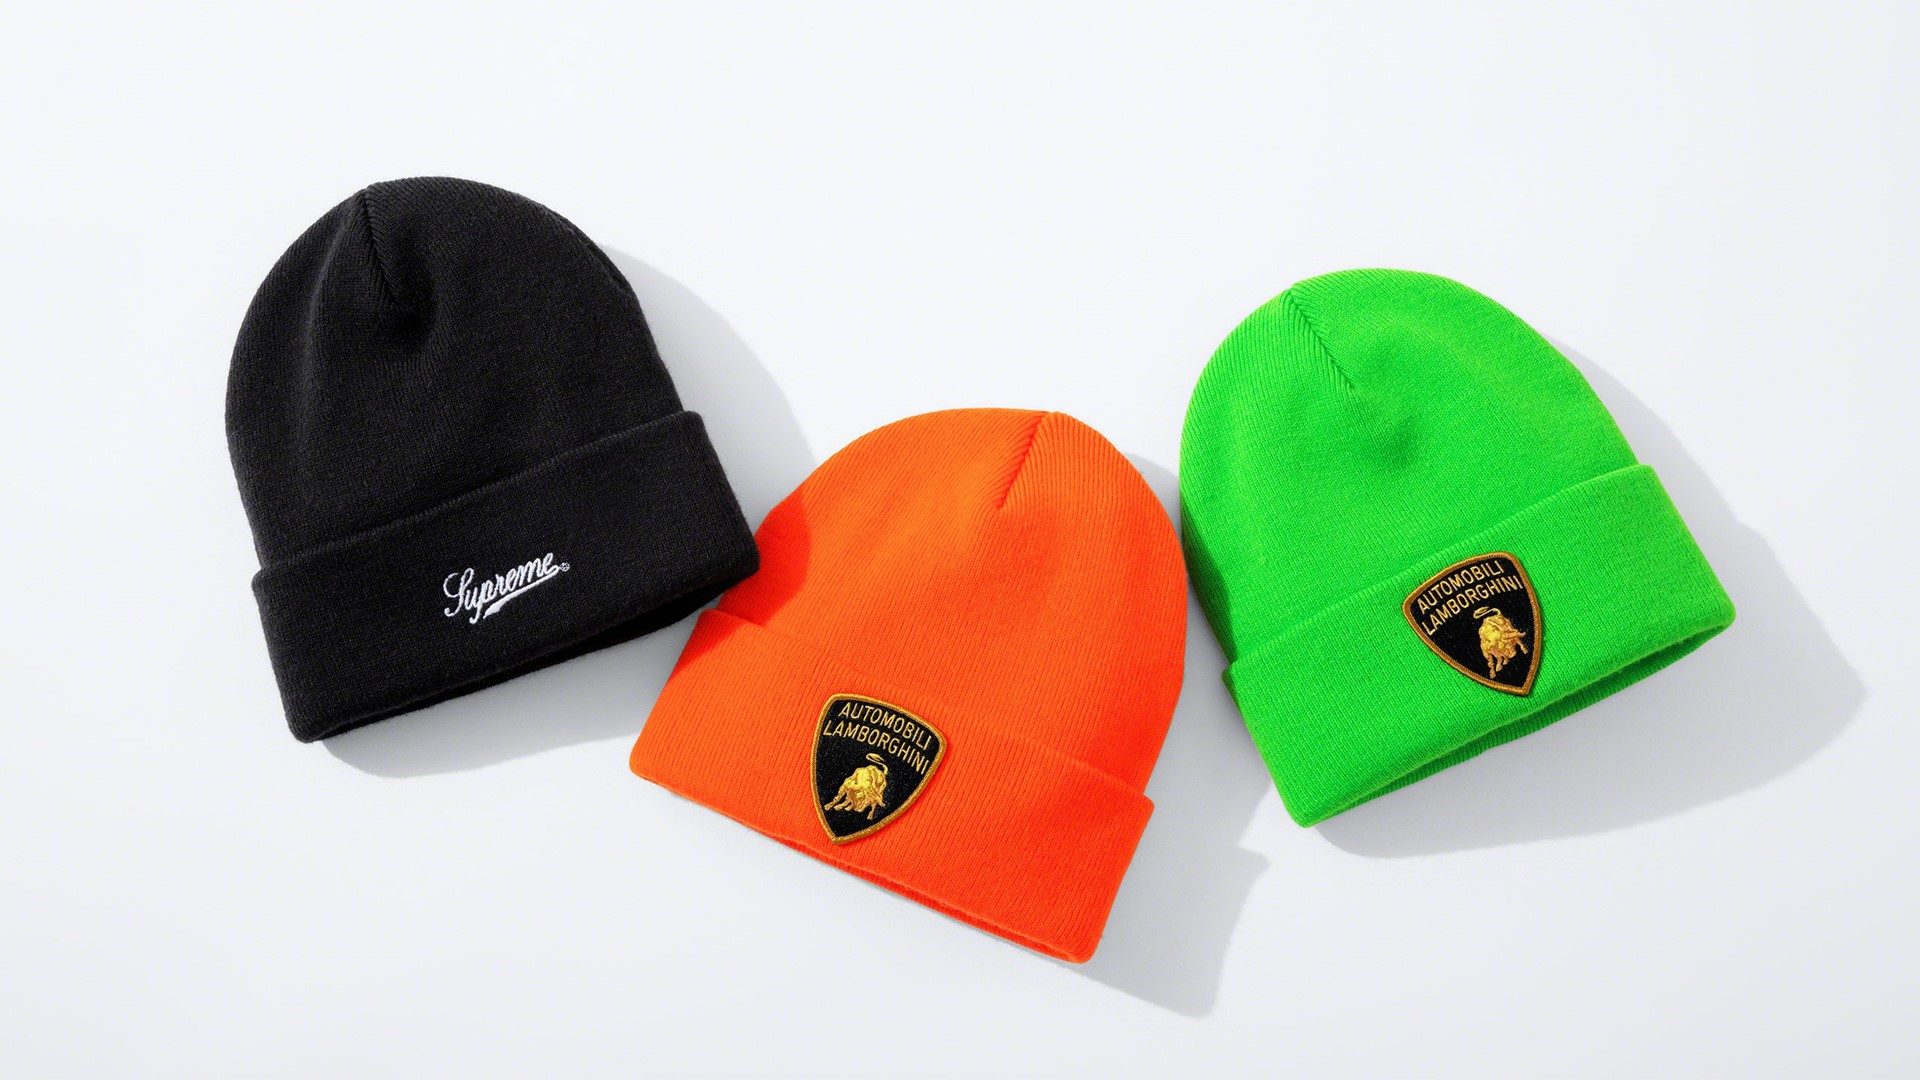 Automobili Lamborghini and Supreme come together on a new collection for Spring-Summer 2020 - Image 3